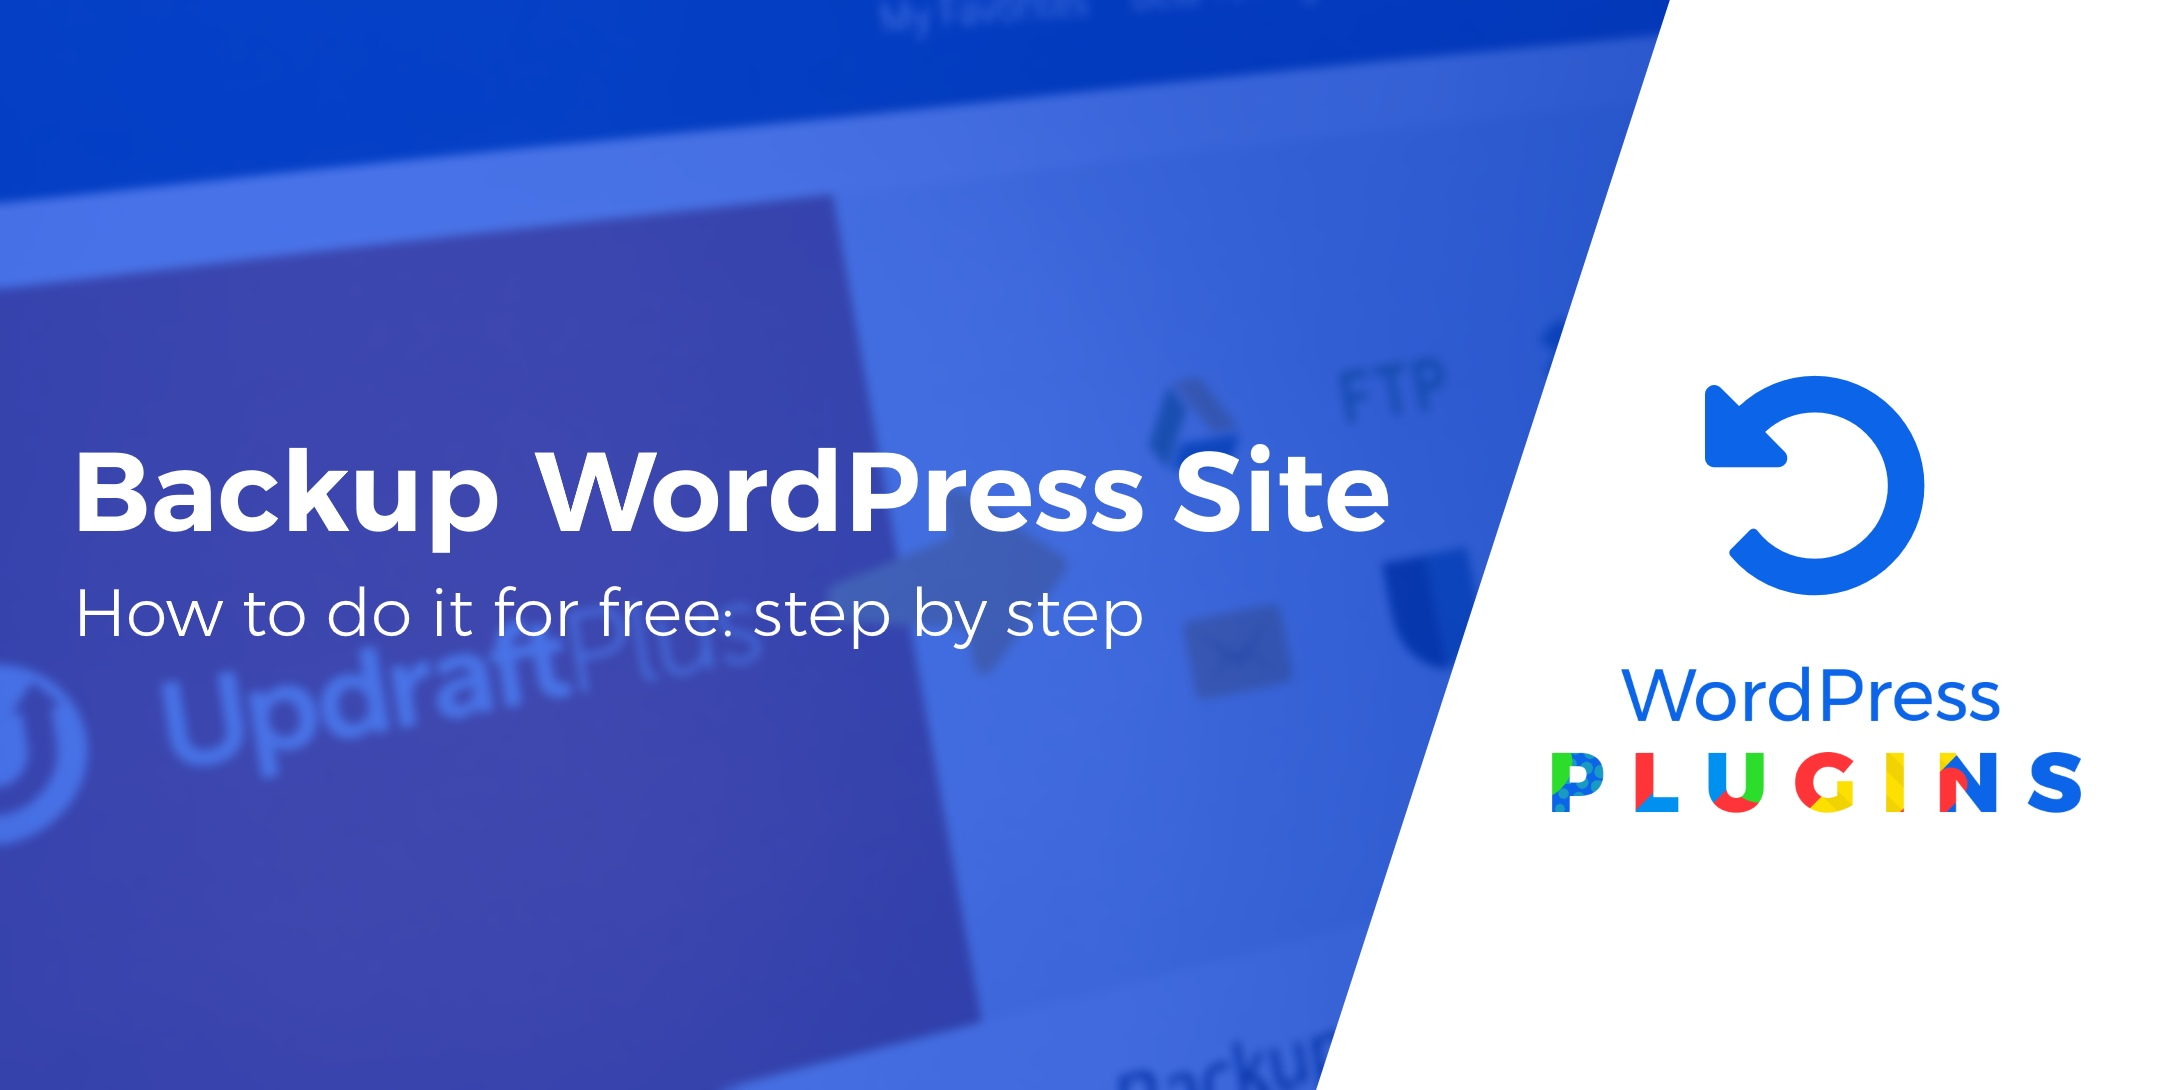 backup a WordPress site for free